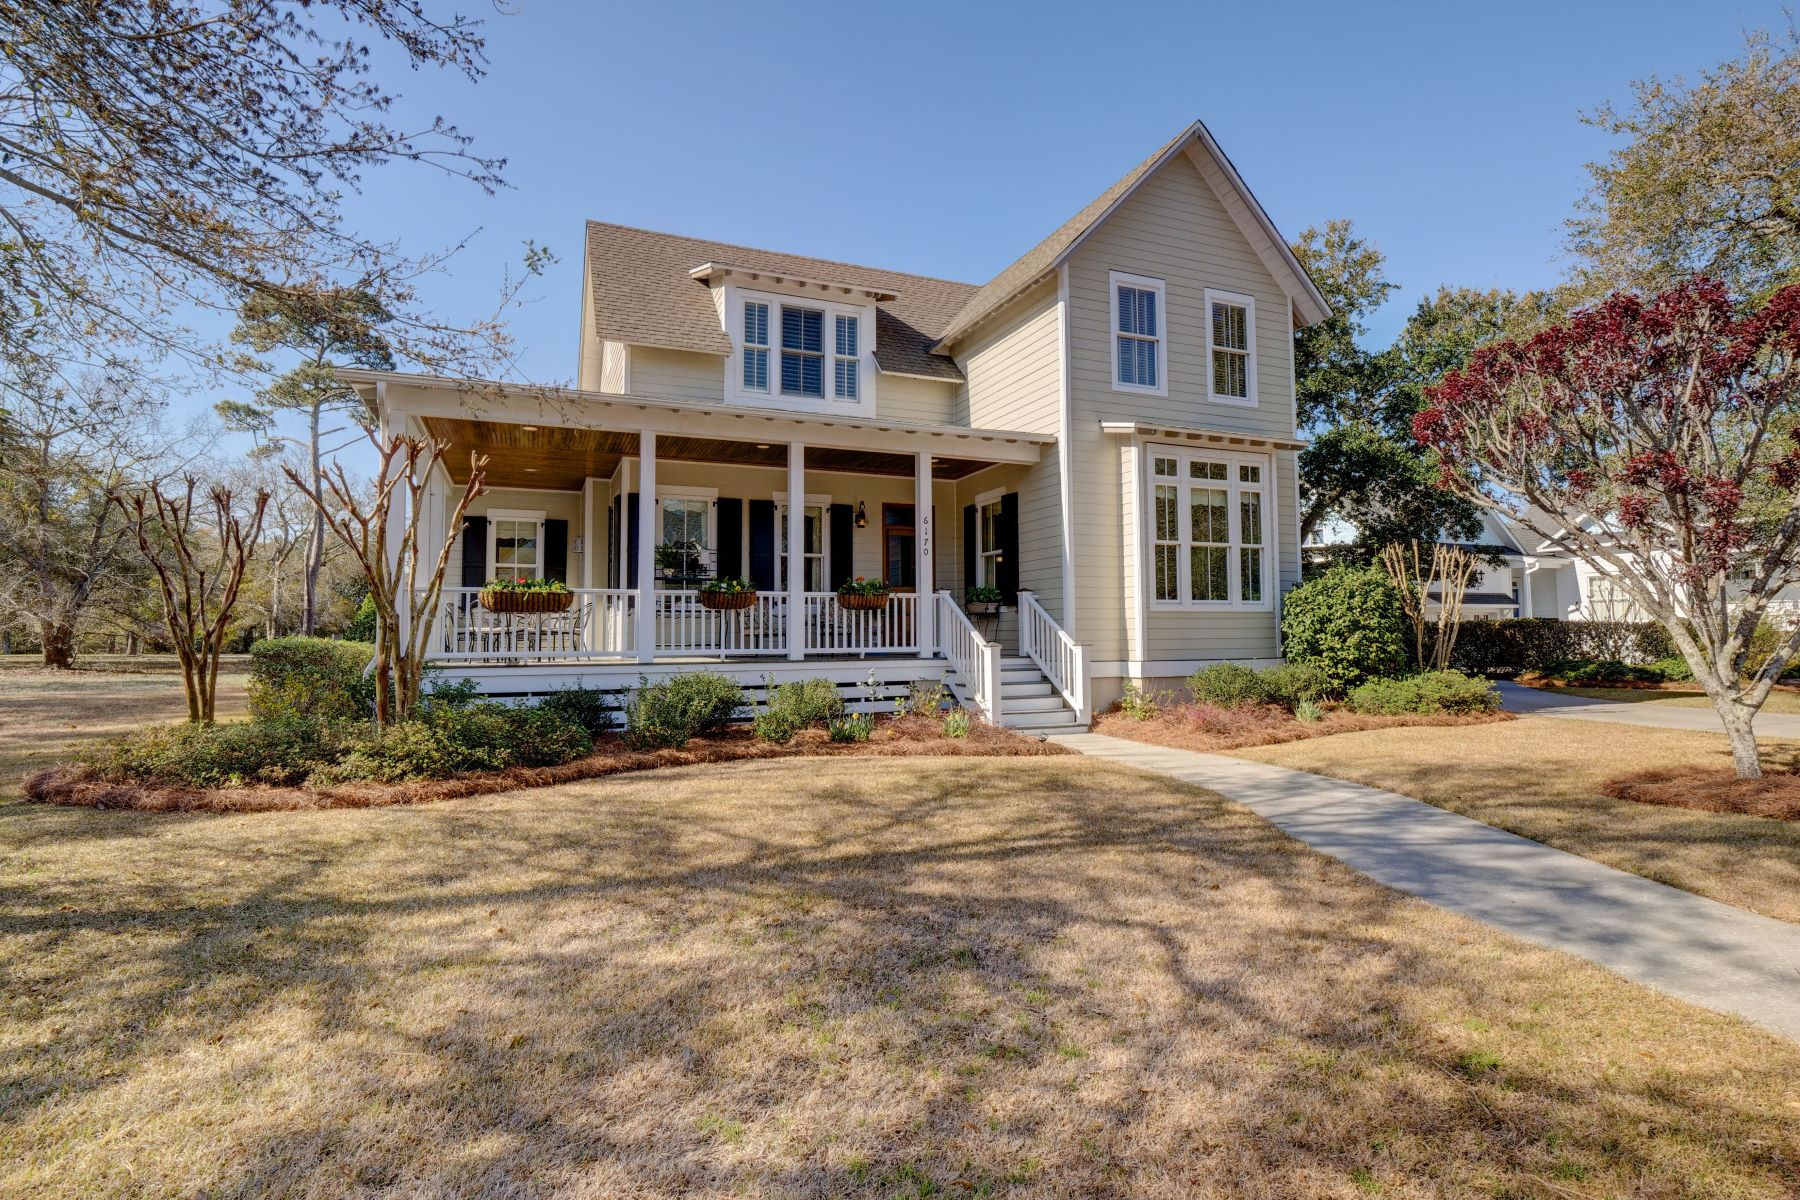 Single Family Home for Sale at Cottage Style Home Charming and Impeccably Maintained 6170 River Sound Circle Southport, North Carolina 28461 United States